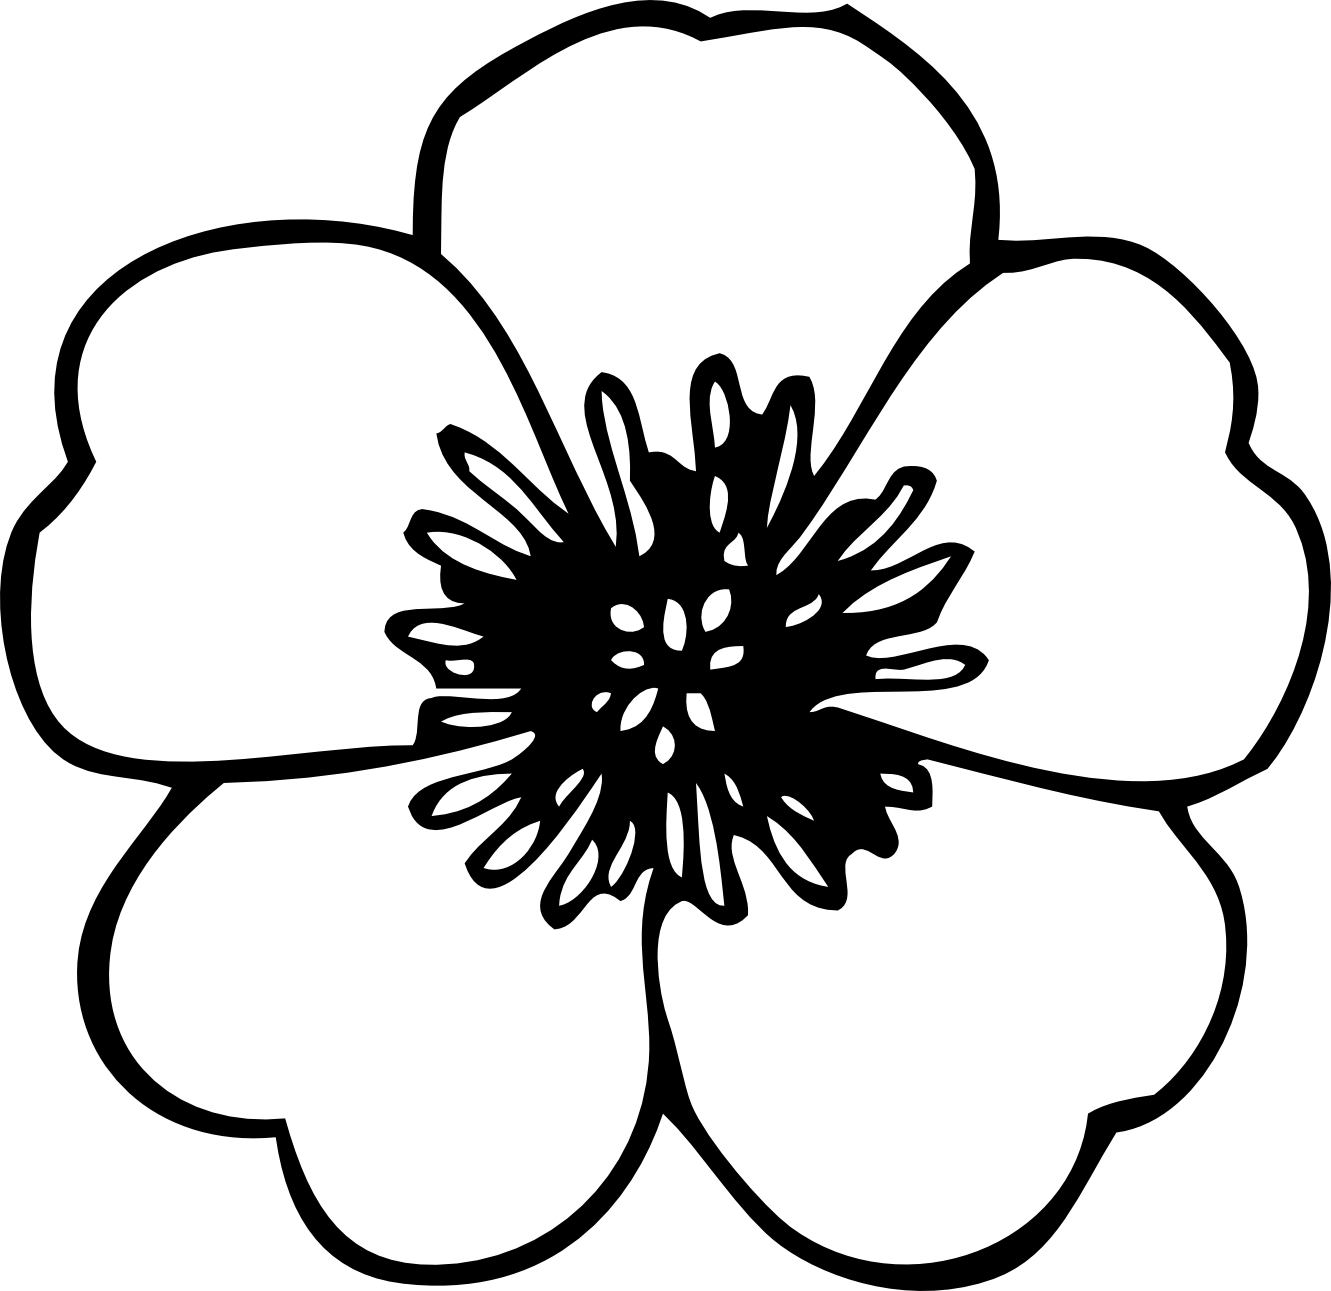 Spring Clip Art Free Black And White